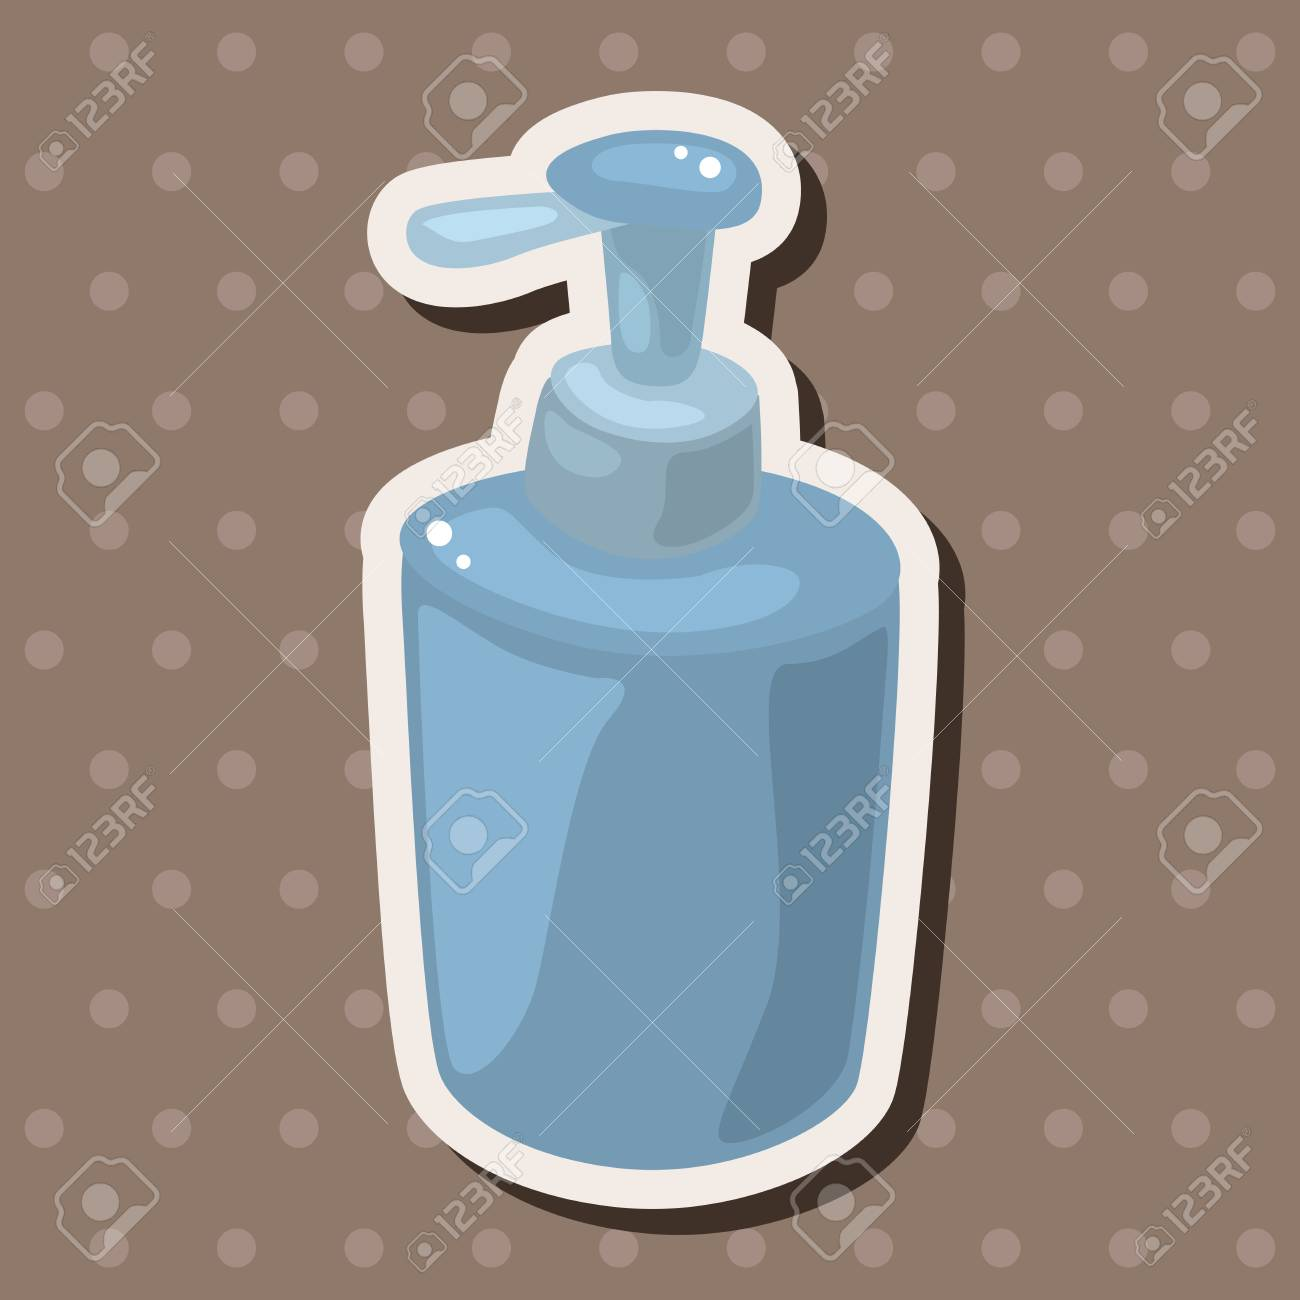 Bathroom Shampoo Theme Elements Royalty Free Cliparts, Vectors, And ...